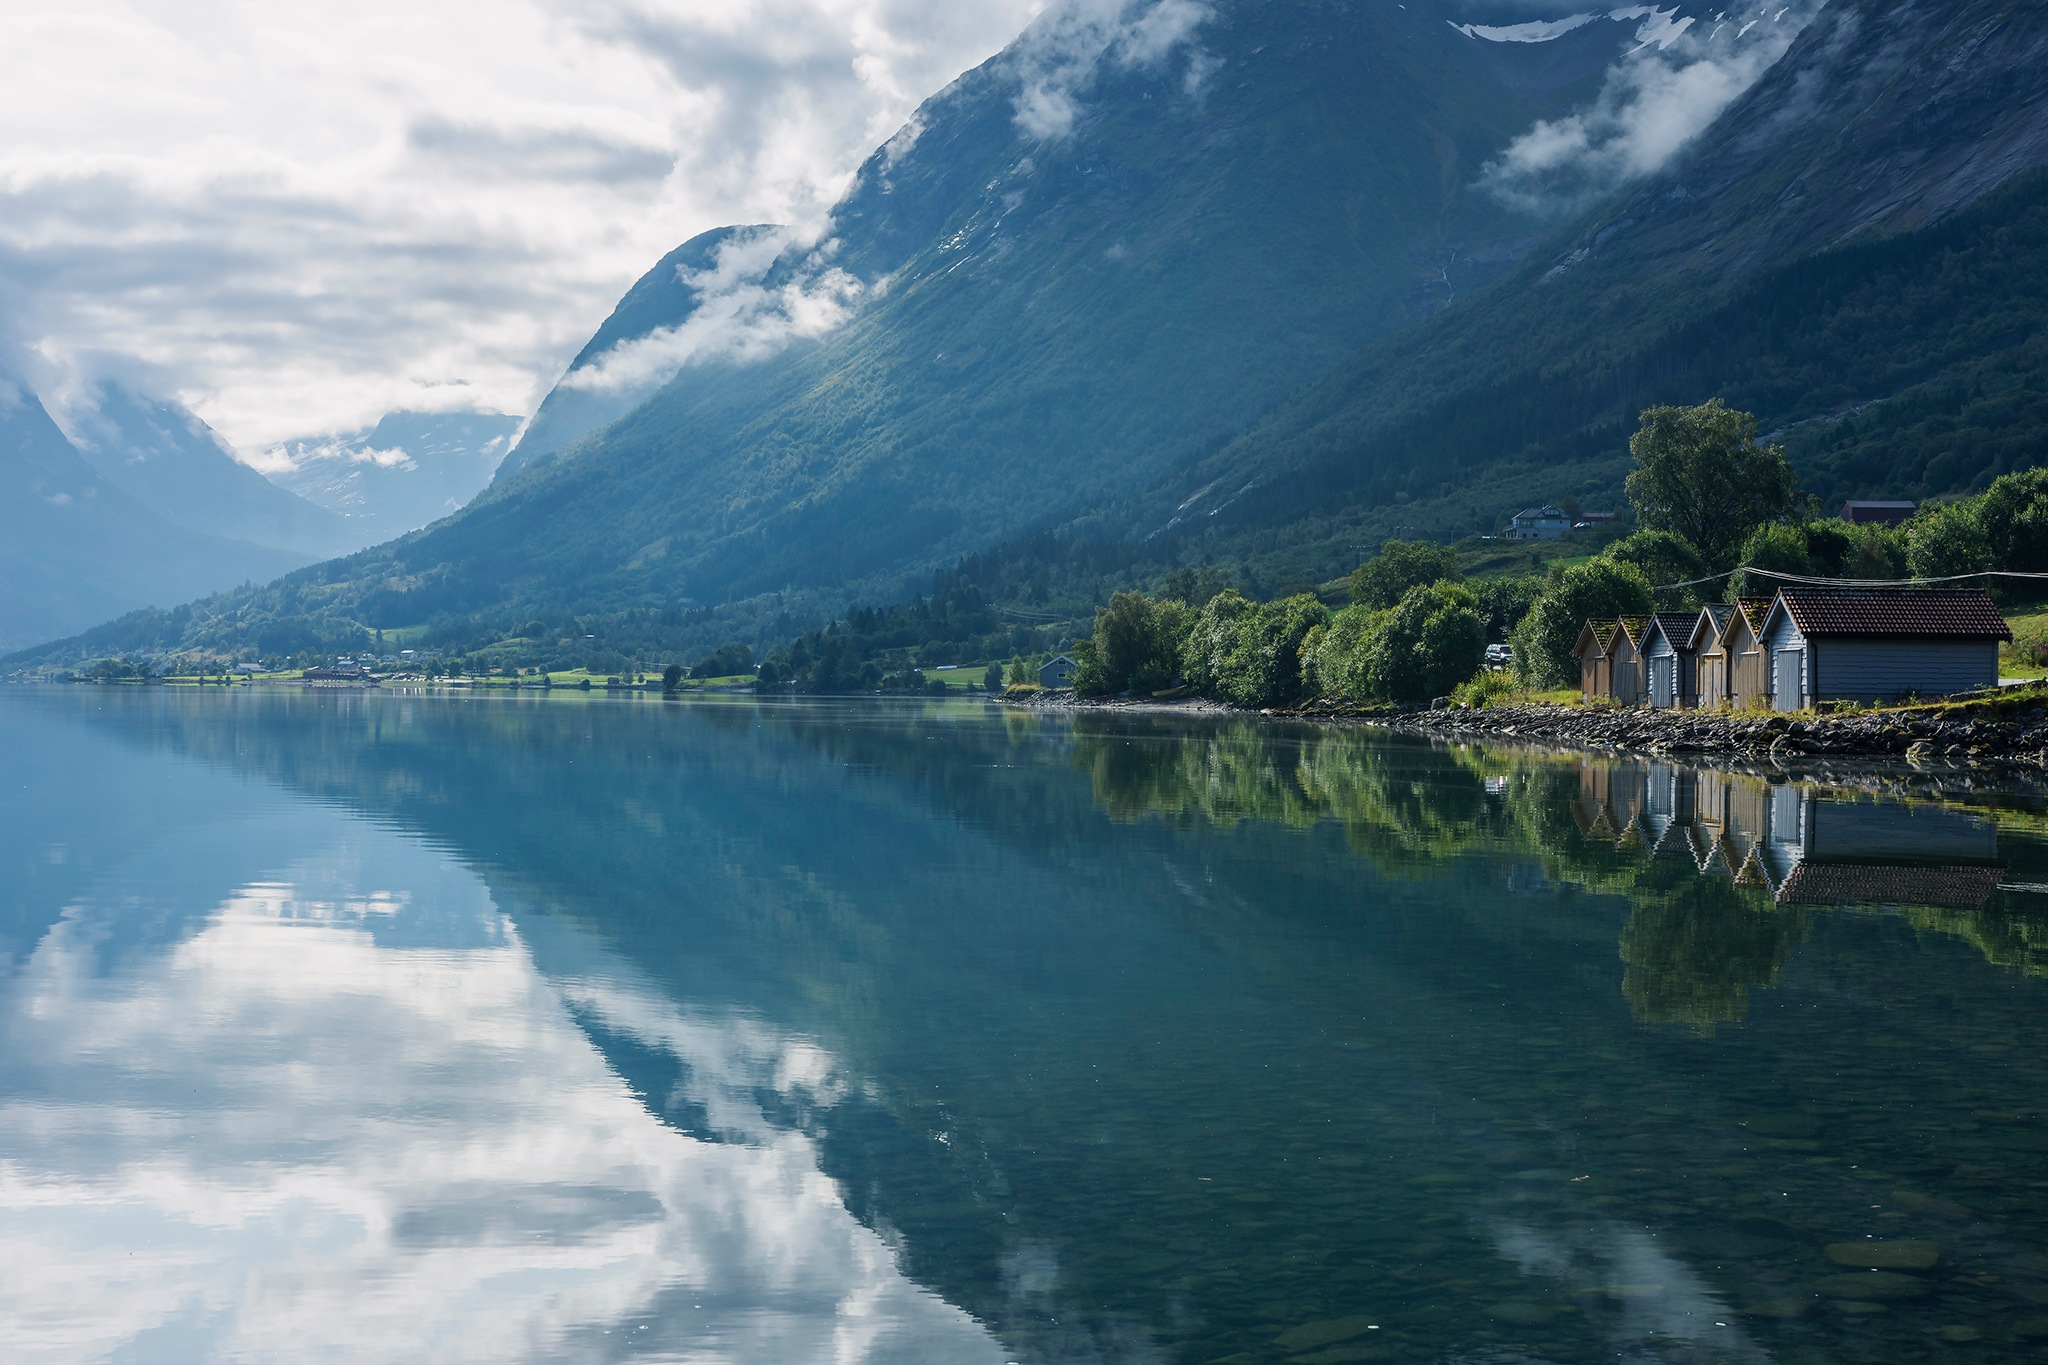 Cabins by the fjord by Didgeridoo Express